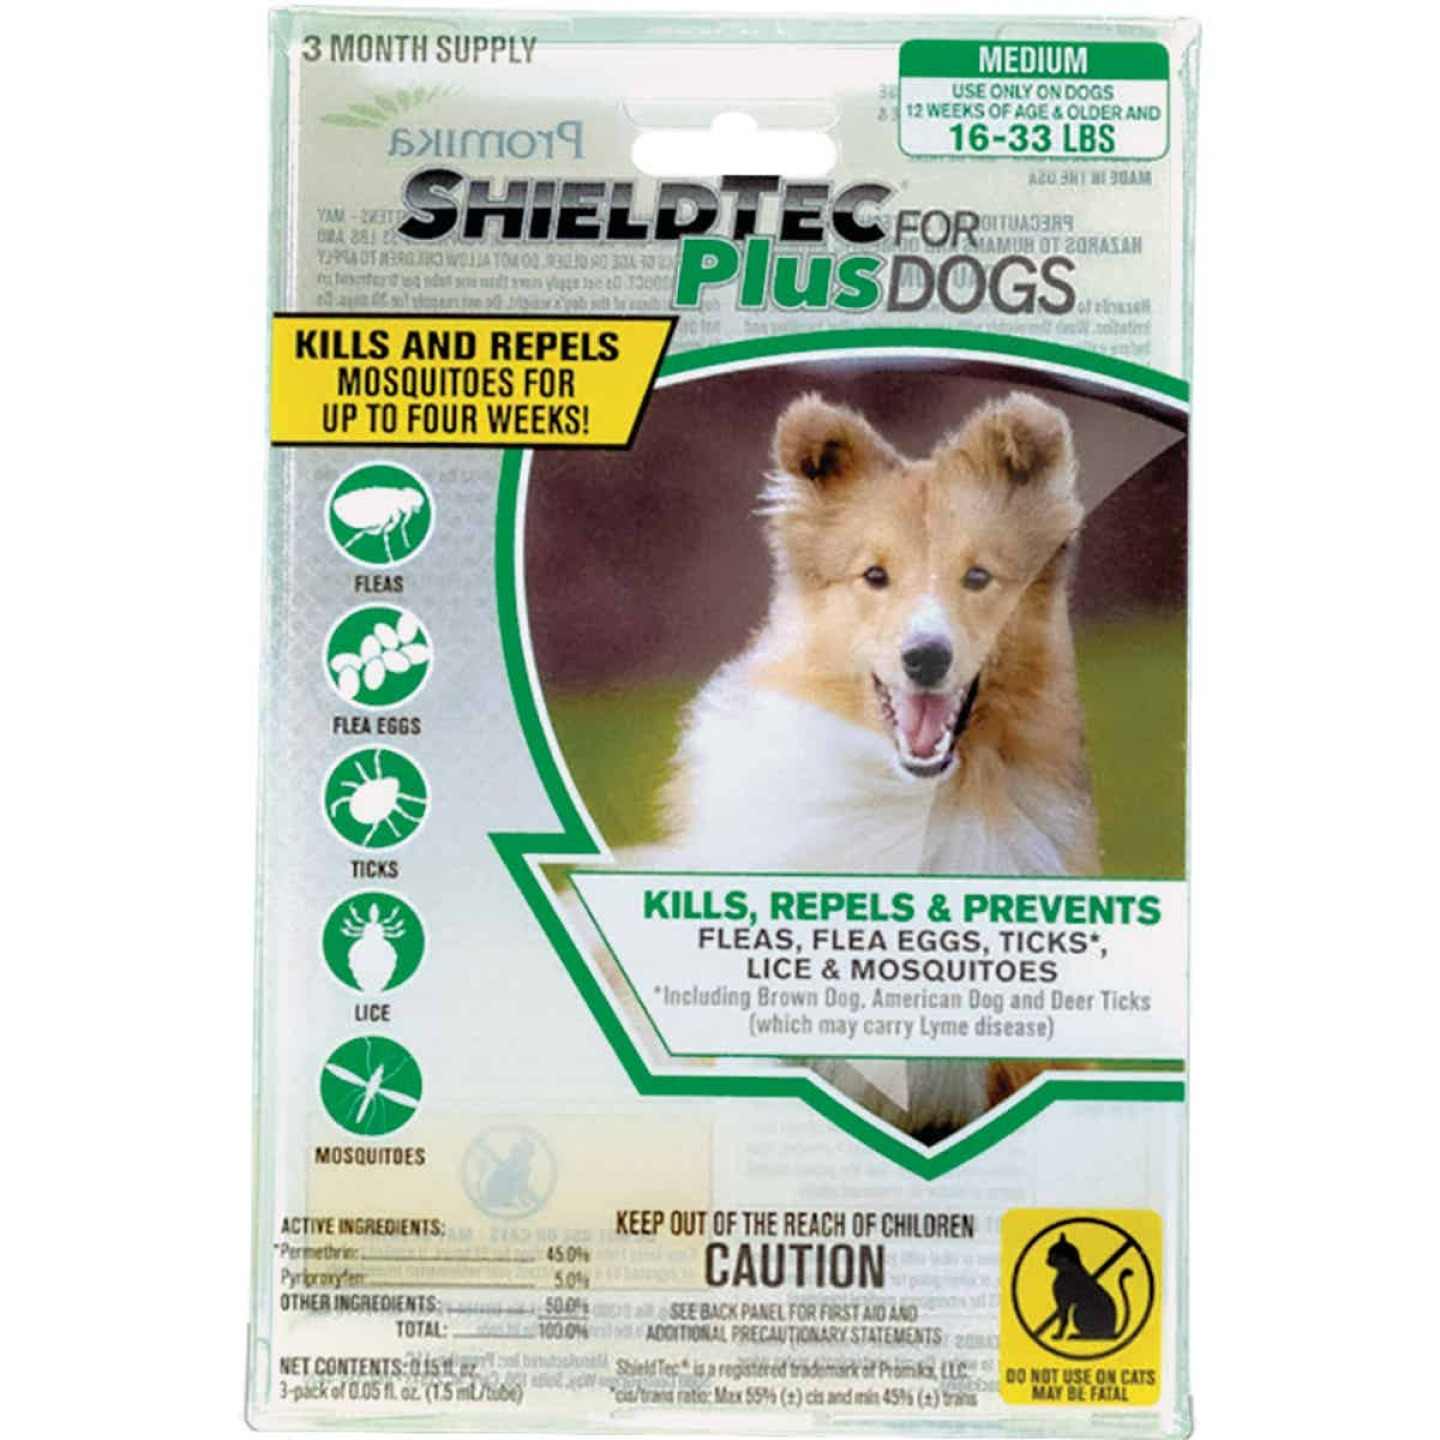 ShieldTec Plus 3-Month Supply Flea & Tick Treatment For Medium Size Dogs 16 Lb. to 33 Lb. Image 1